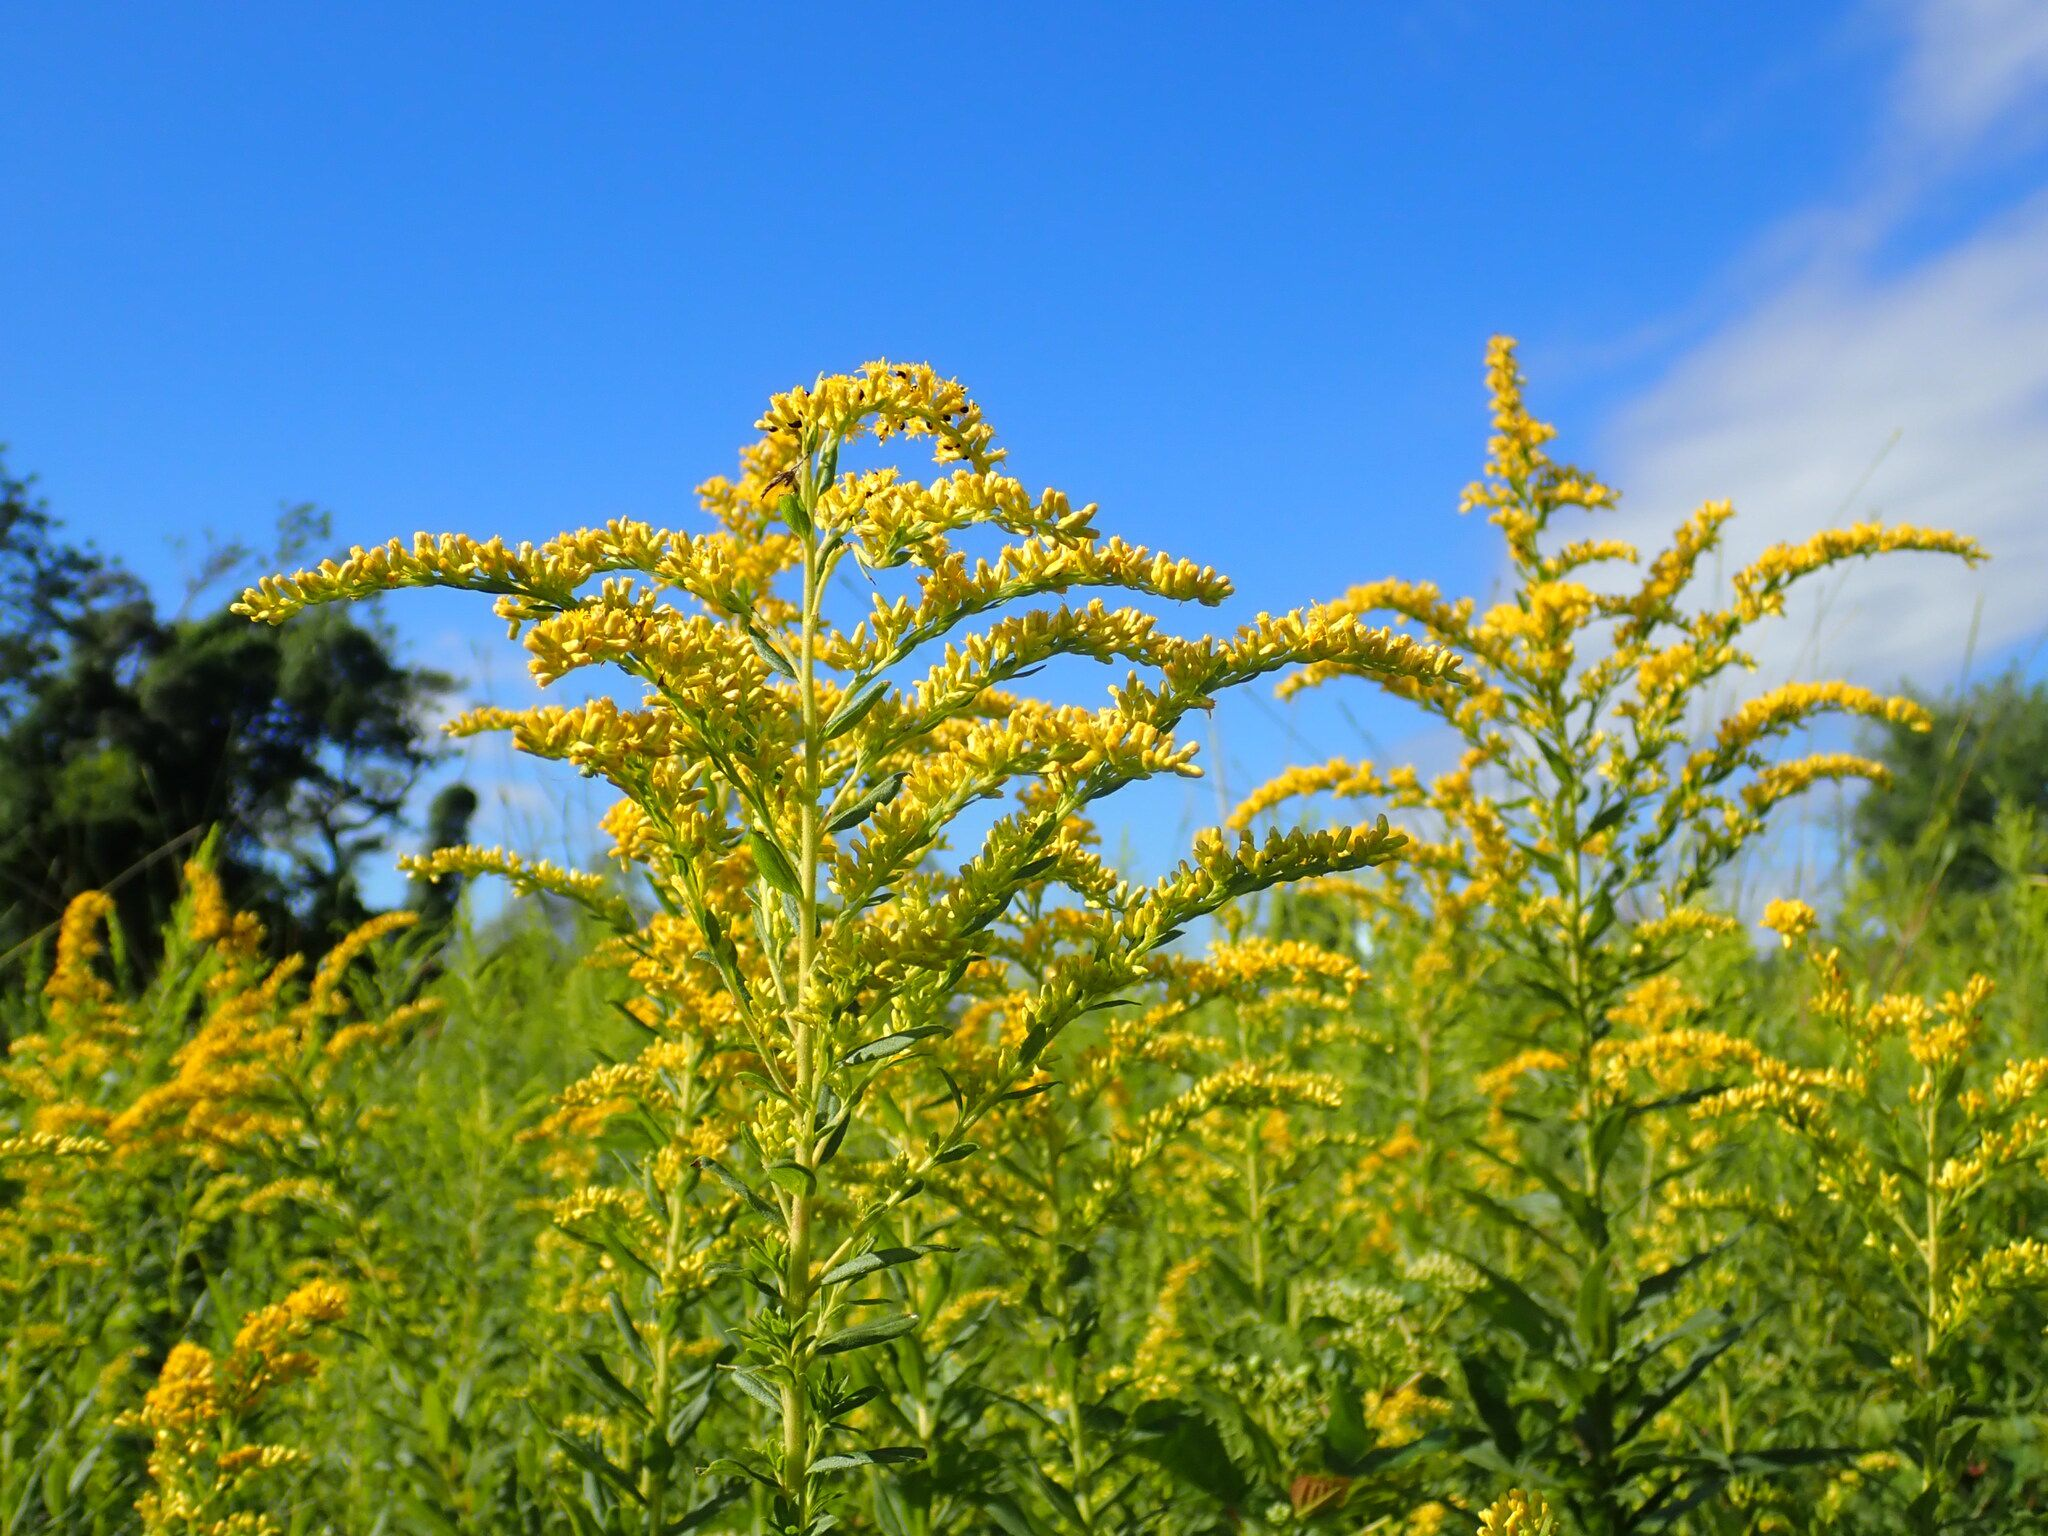 Bright yellow goldenrod plants are against a blue sky background.